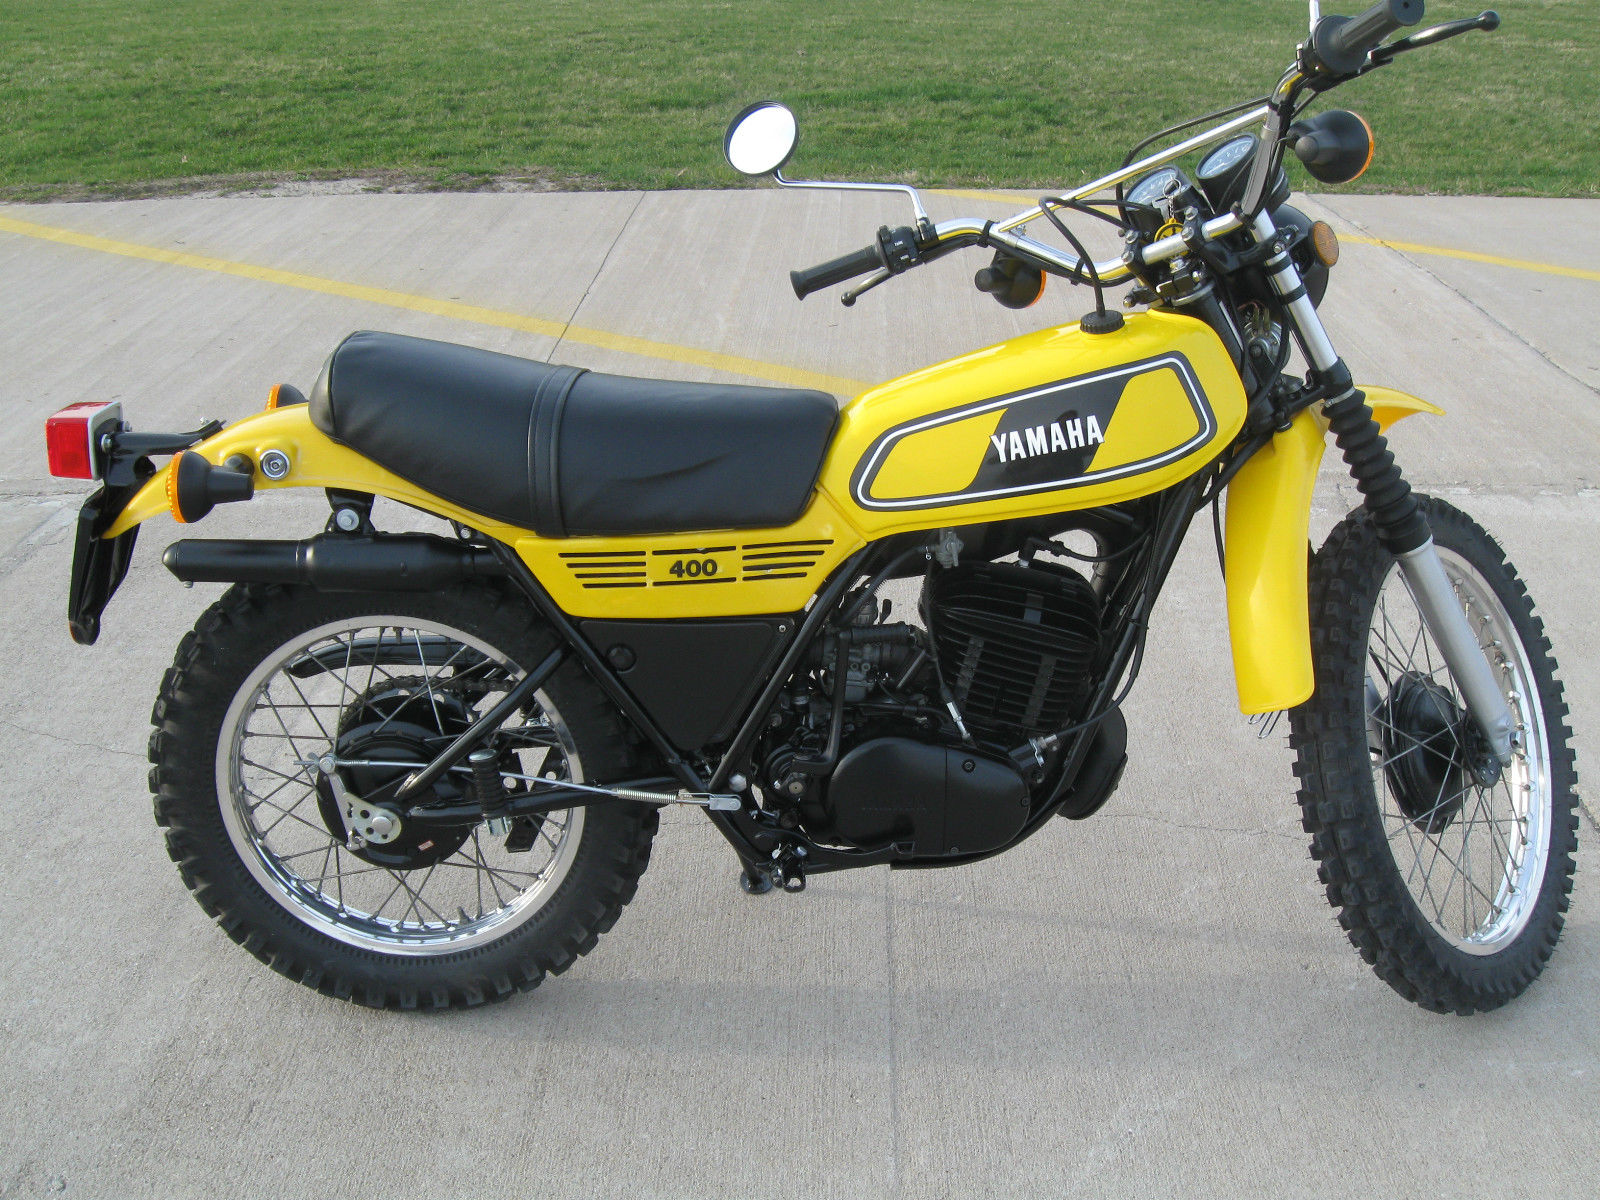 Restored Yamaha Dt400e 1978 Photographs At Classic Bikes Restored Bikes Restored